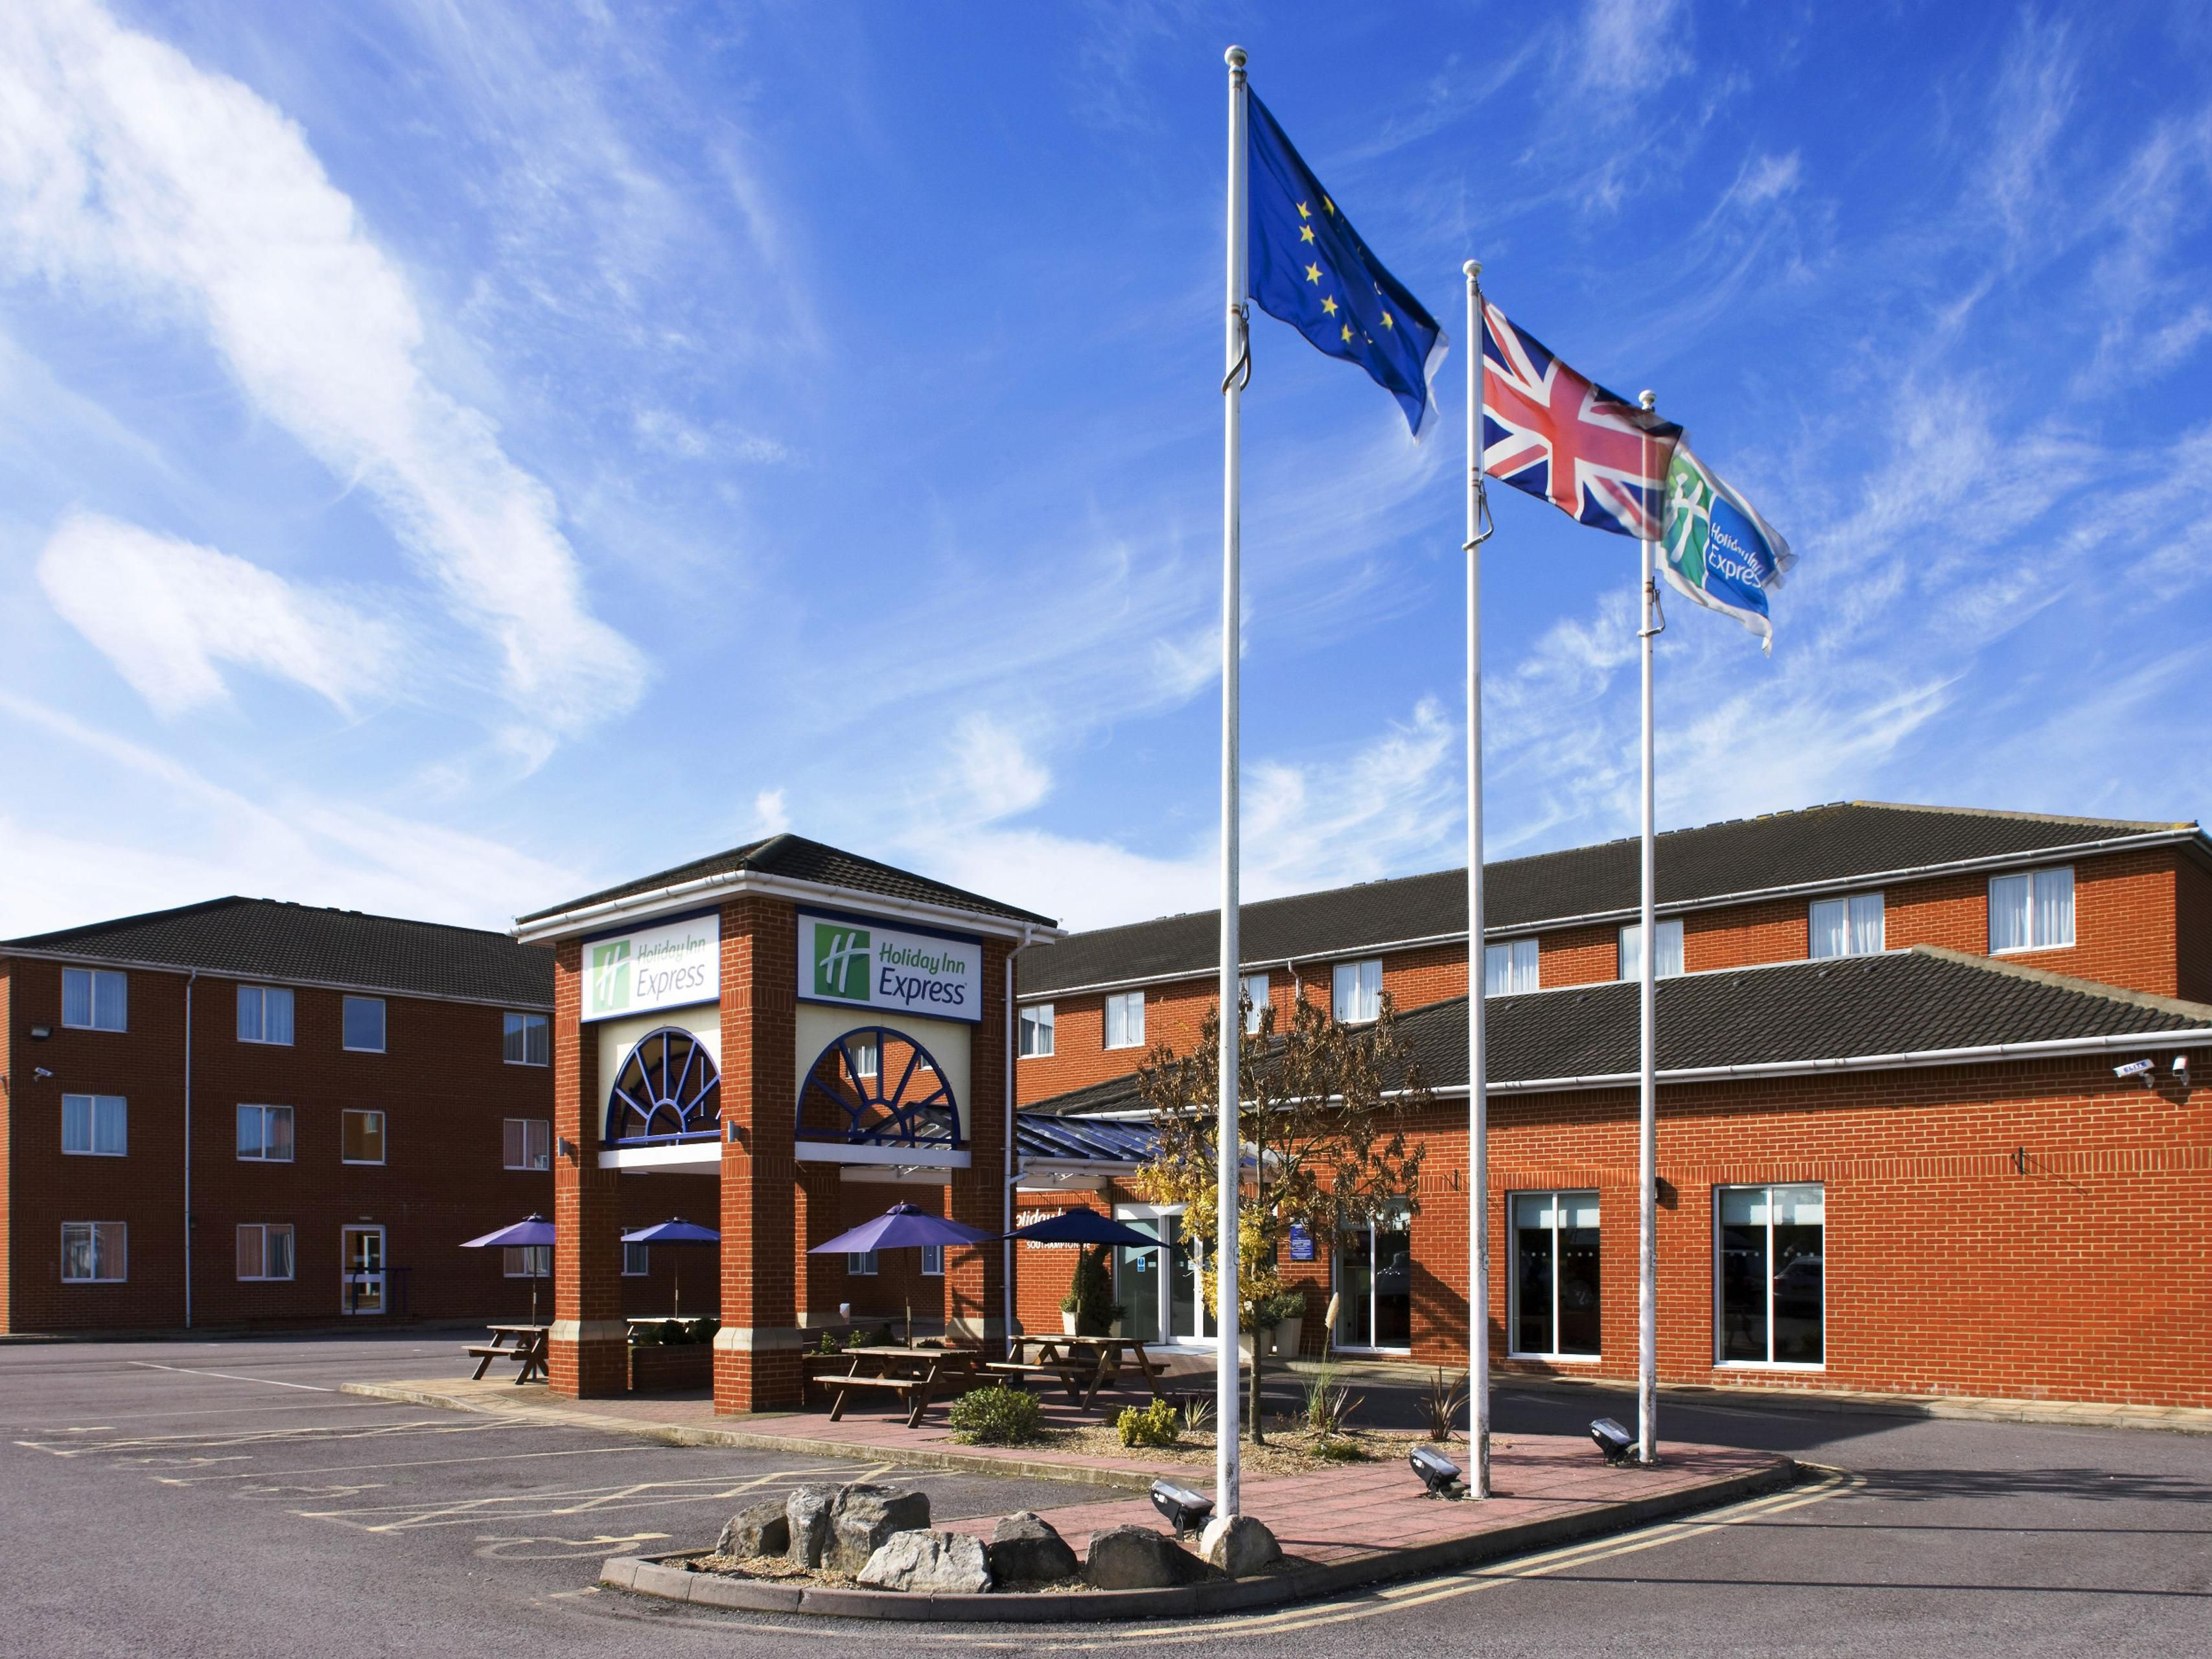 Welcome to Holiday Inn Express Southampton - West